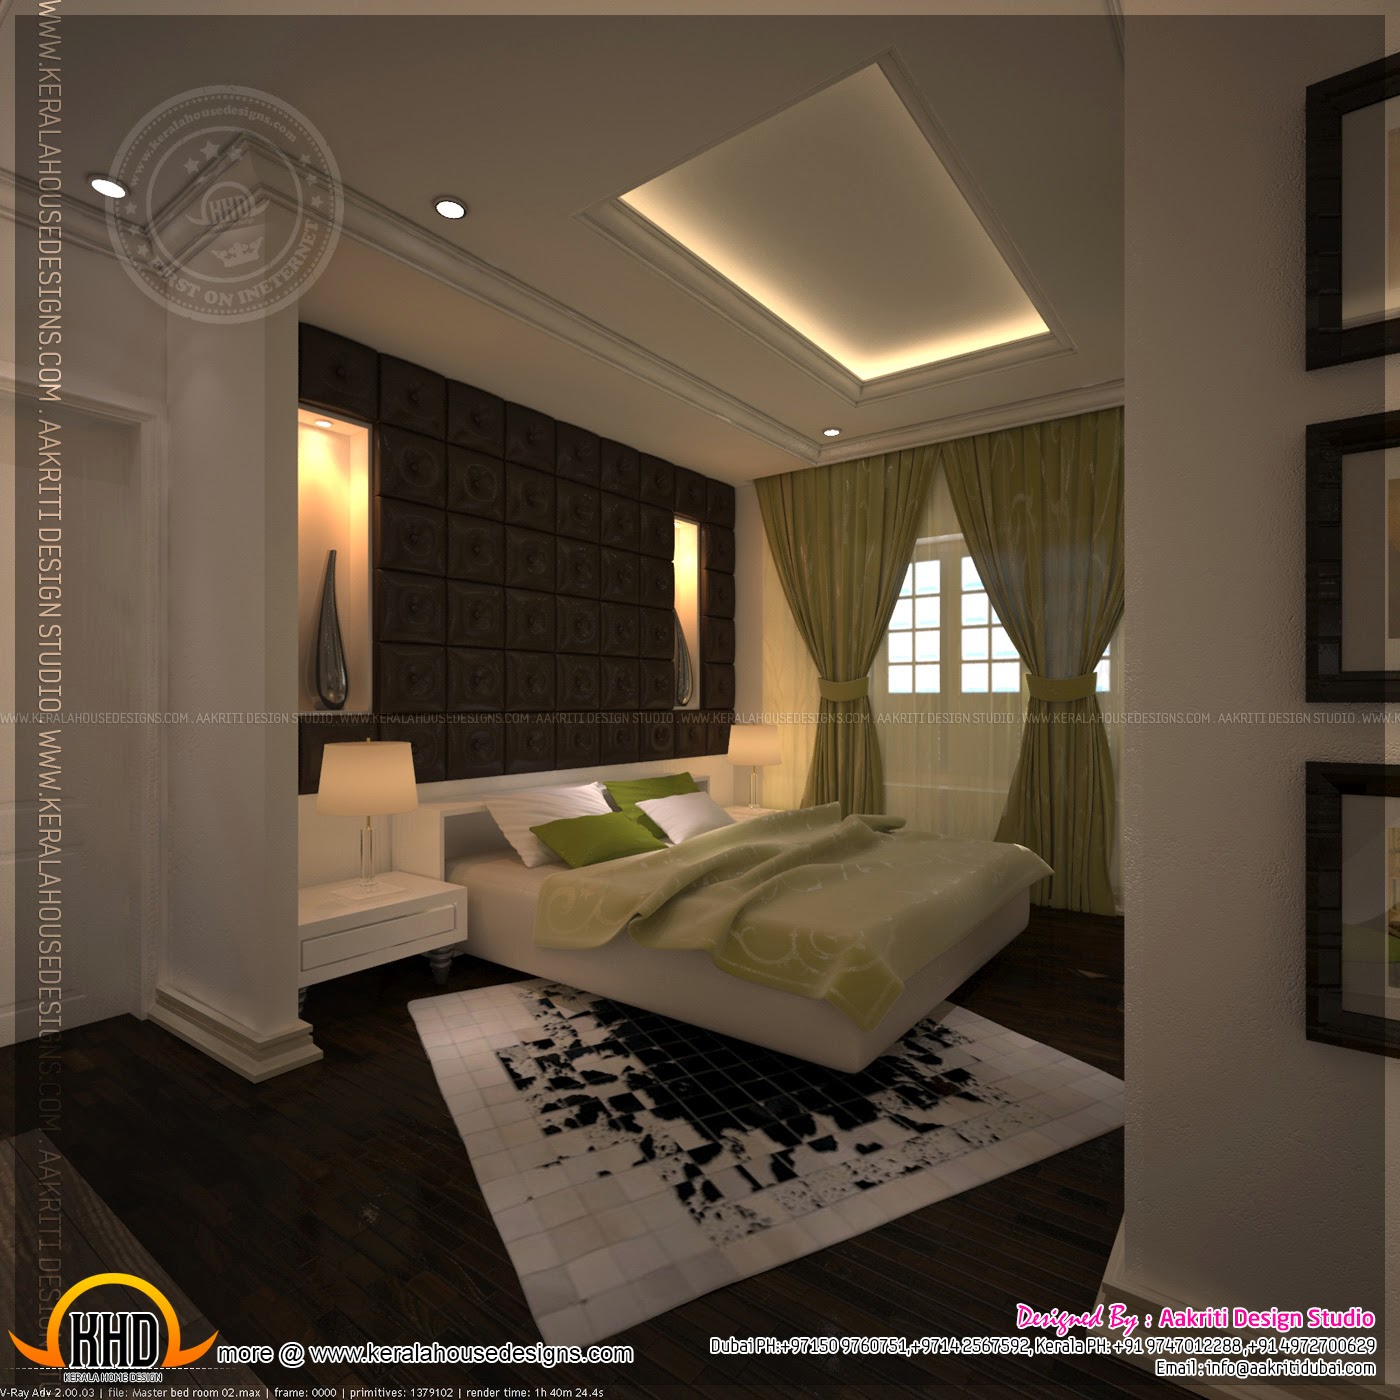 April 2015 home kerala plans - Bedrooms interior design ...